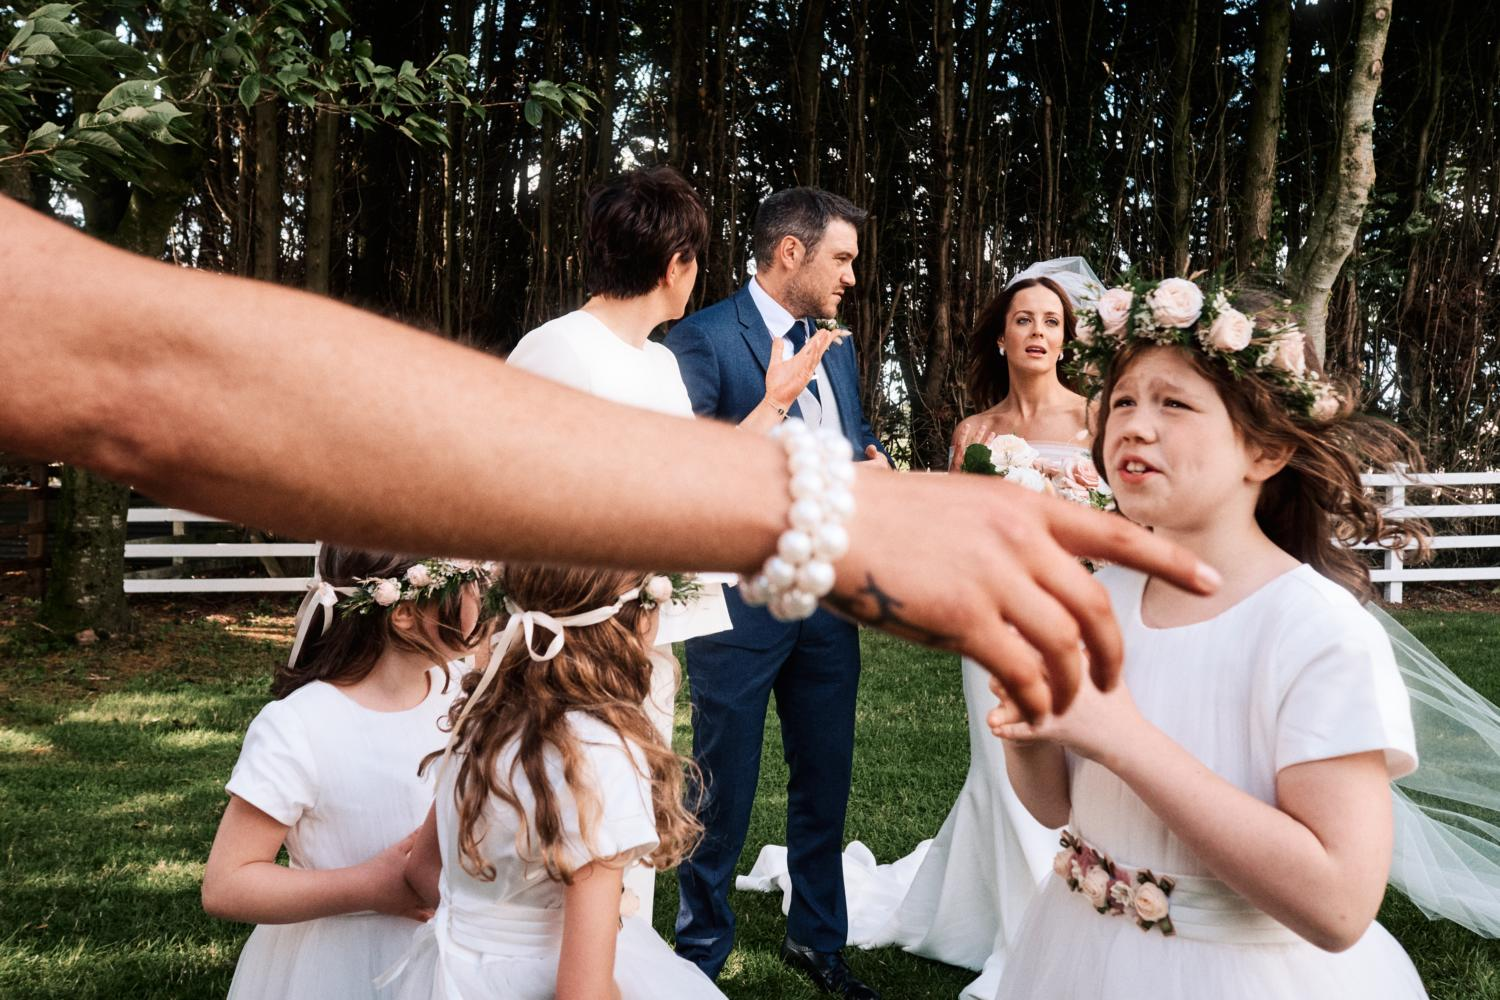 A mother points at a flower girl at a wedding